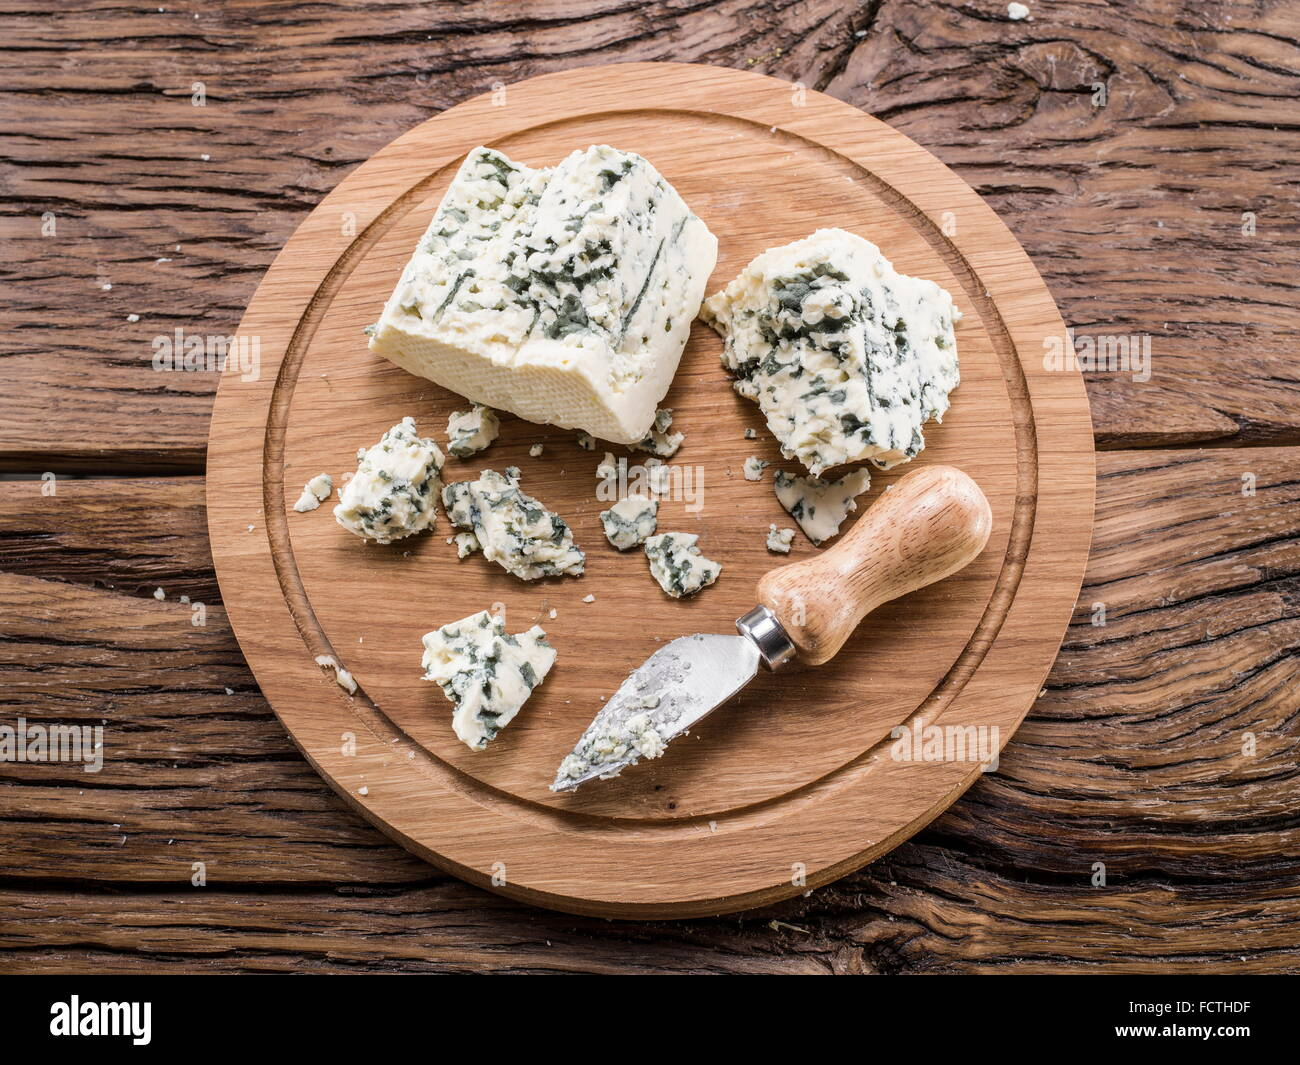 Danish blue cheese on a wooden board. Stock Photo